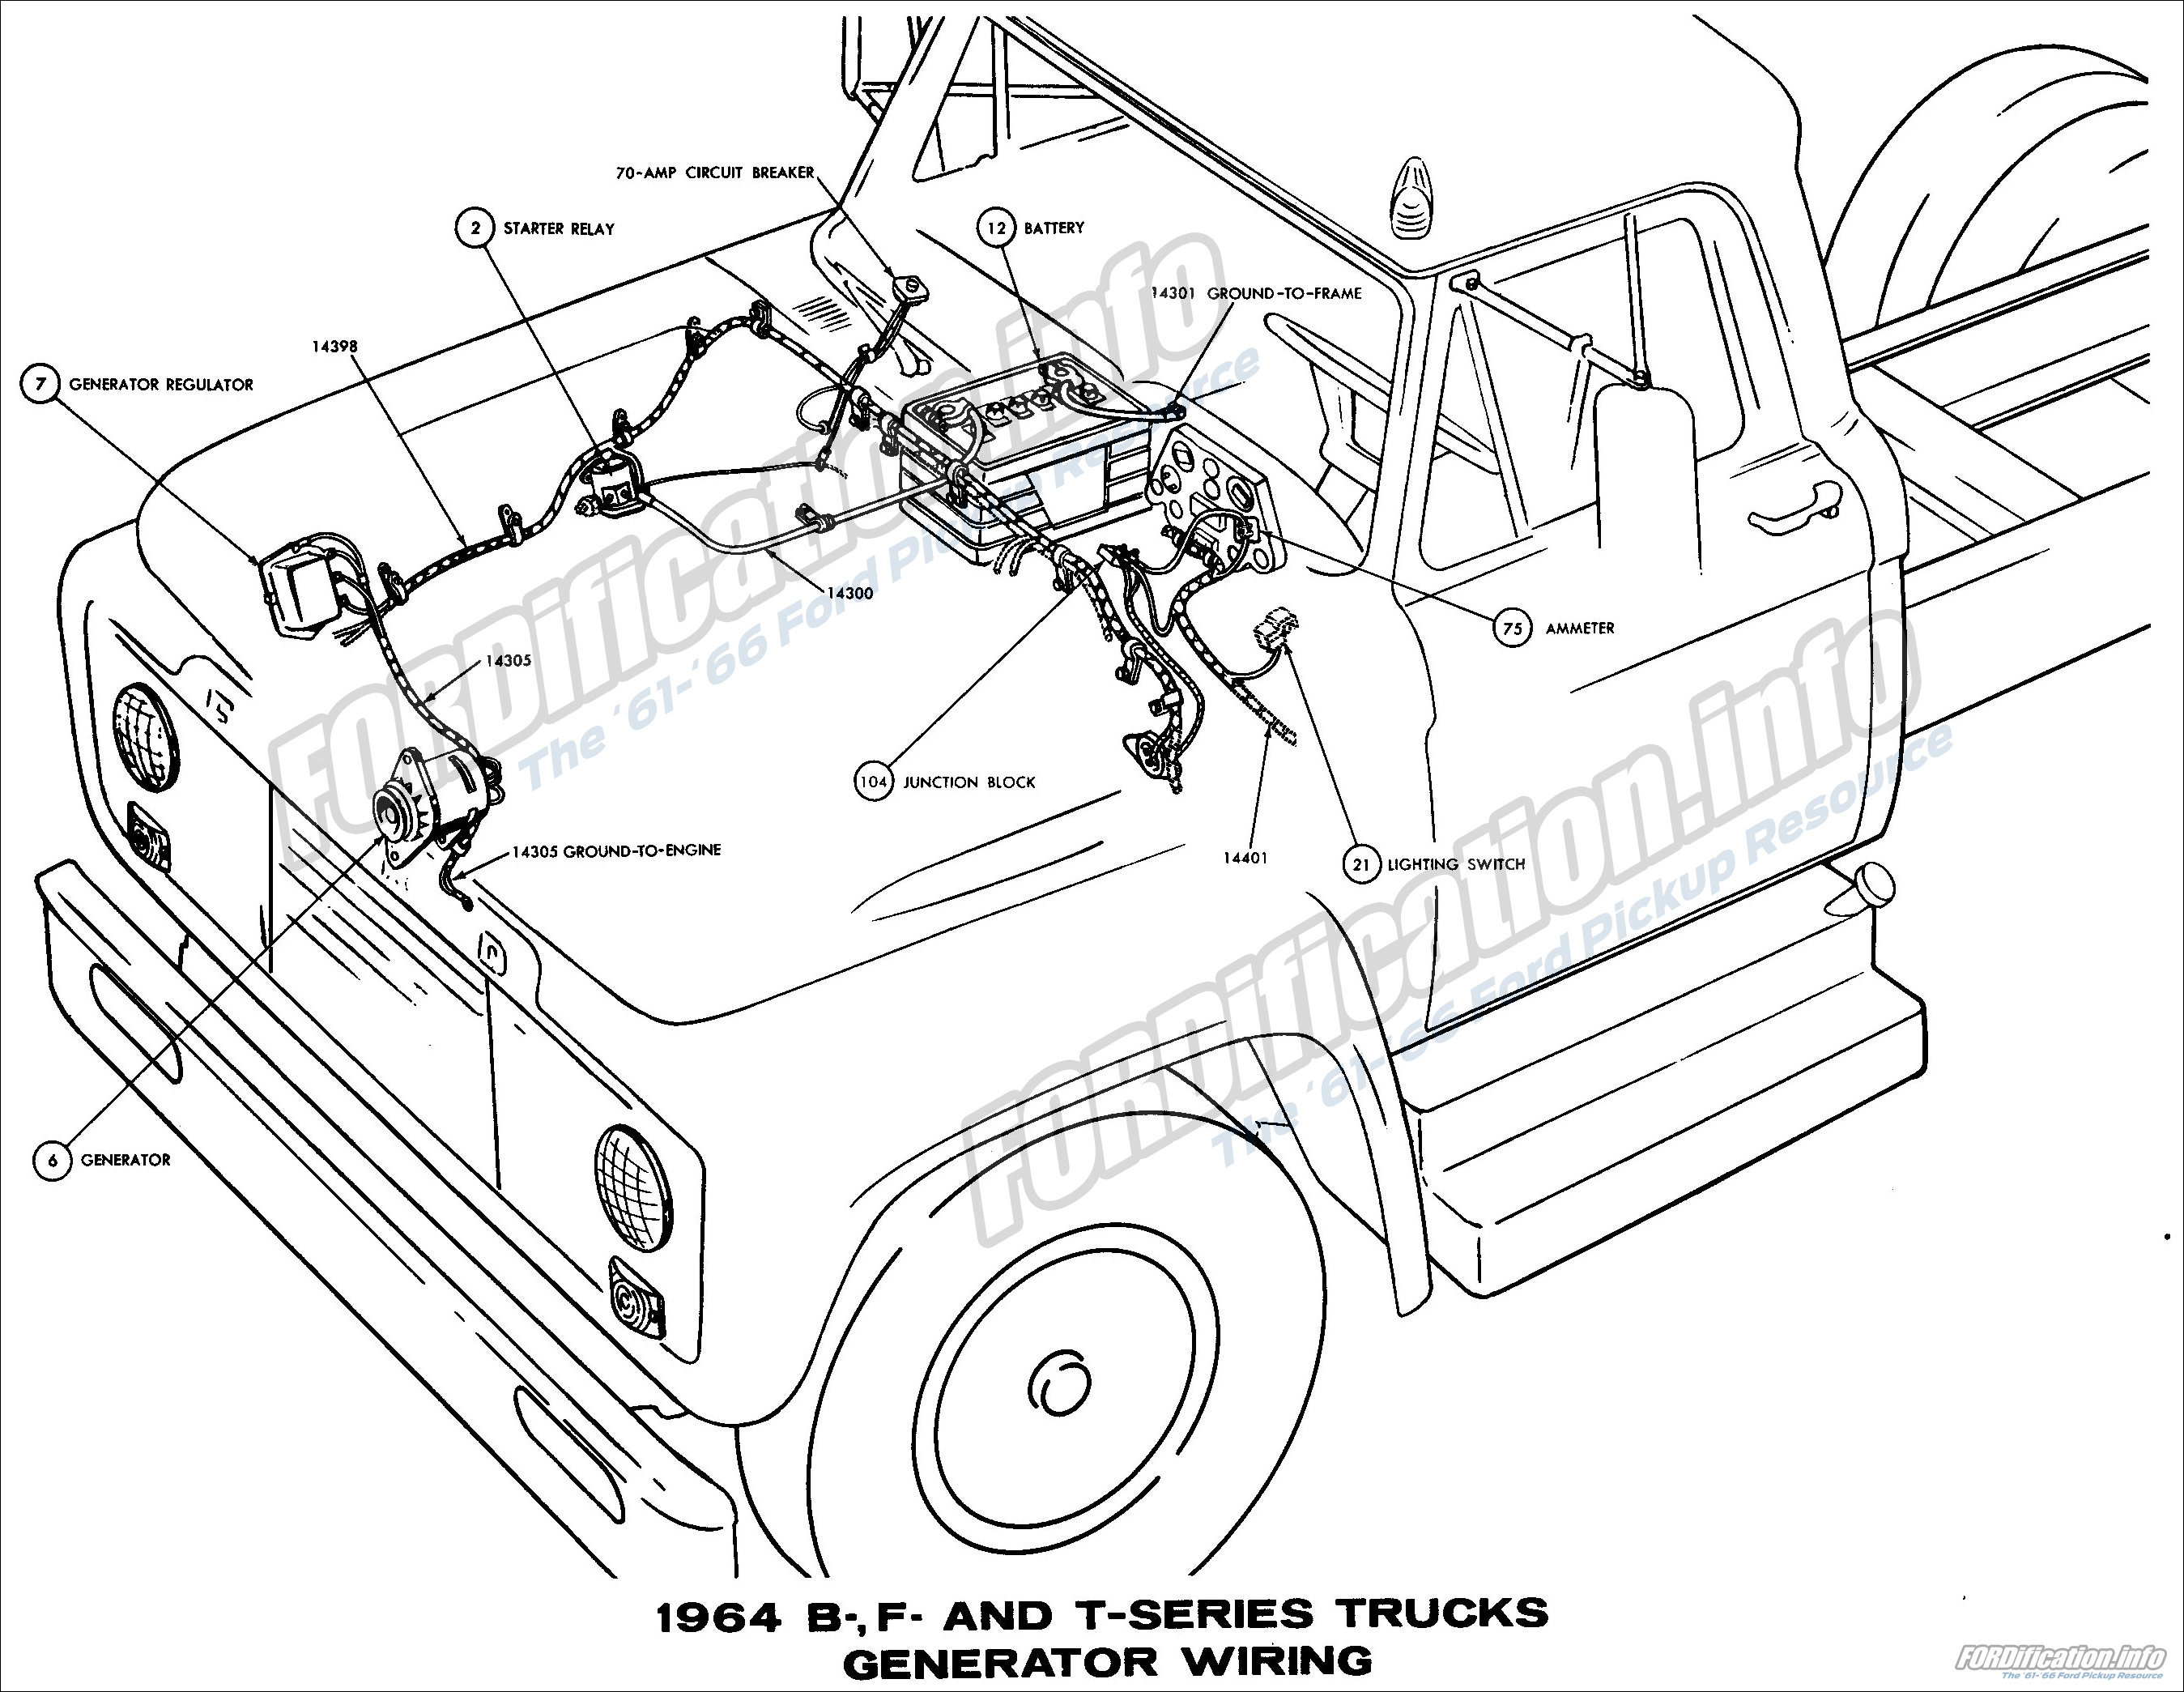 1957 dodge wiring diagram plymouth engine diagrams dodge dart wiring 2014 Ford Contour blazer wiring diagram 1972 chevrolet blazer wiring diagram images 1957 ford truck wiring diagram 70 ford